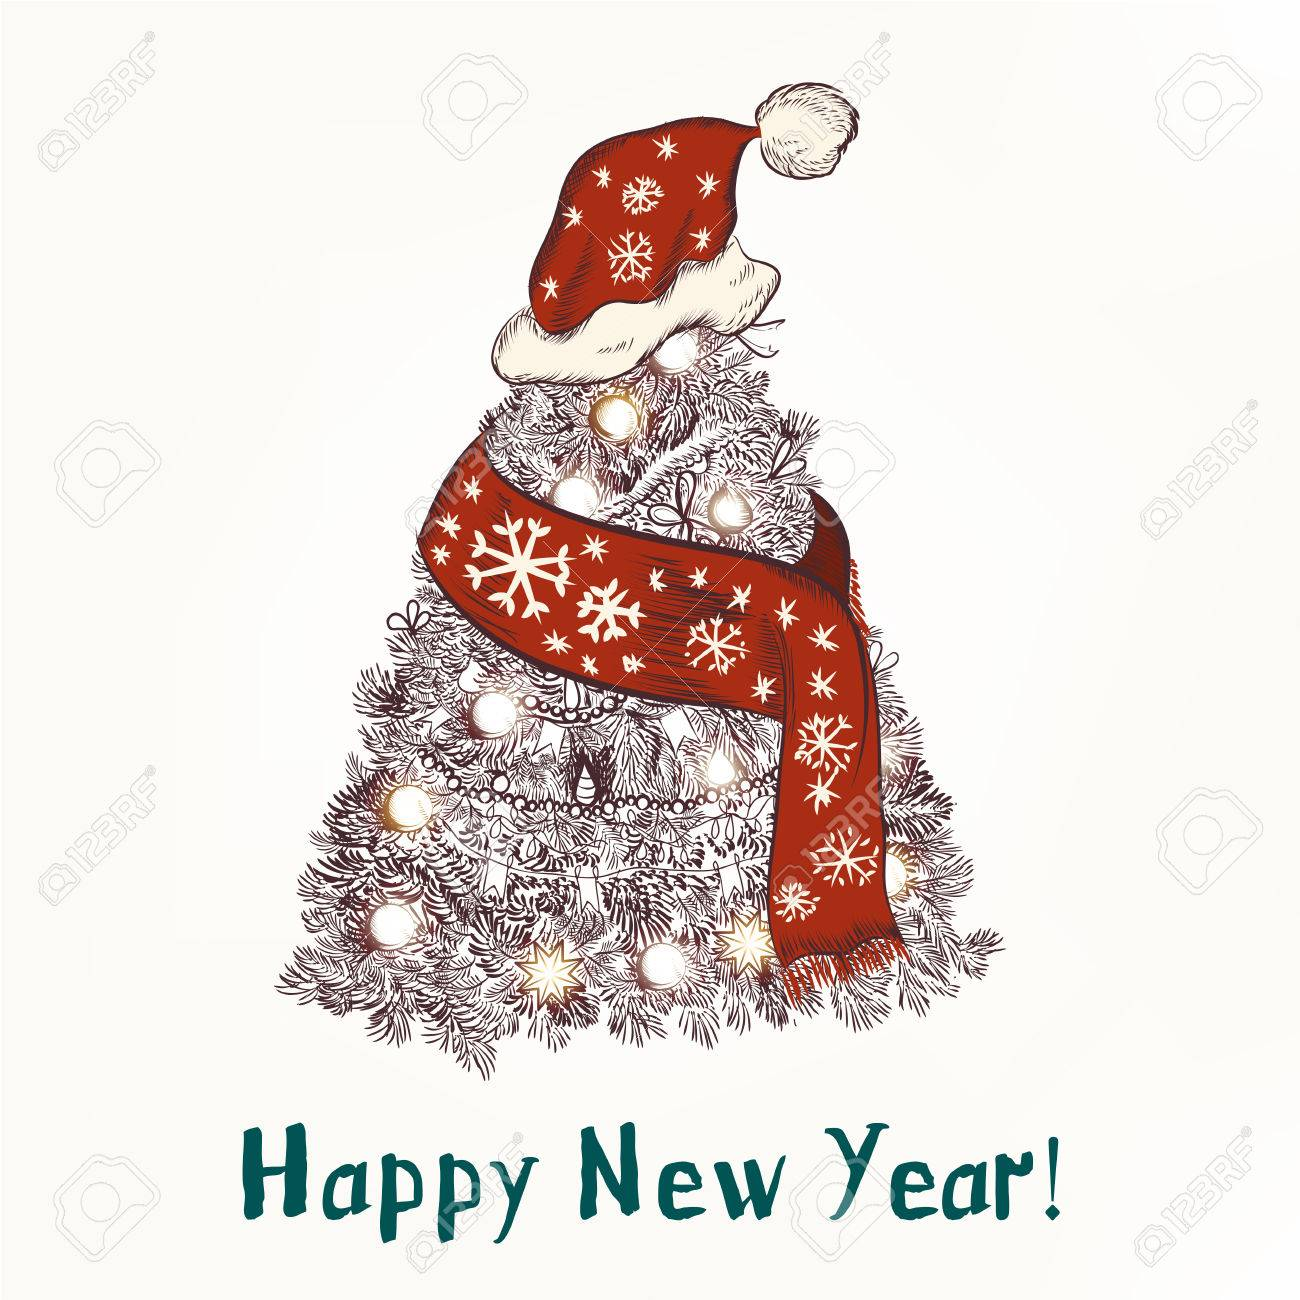 Christmas Humor Images.New Year Or Christmas Humor Background With Xmas Tree In Red